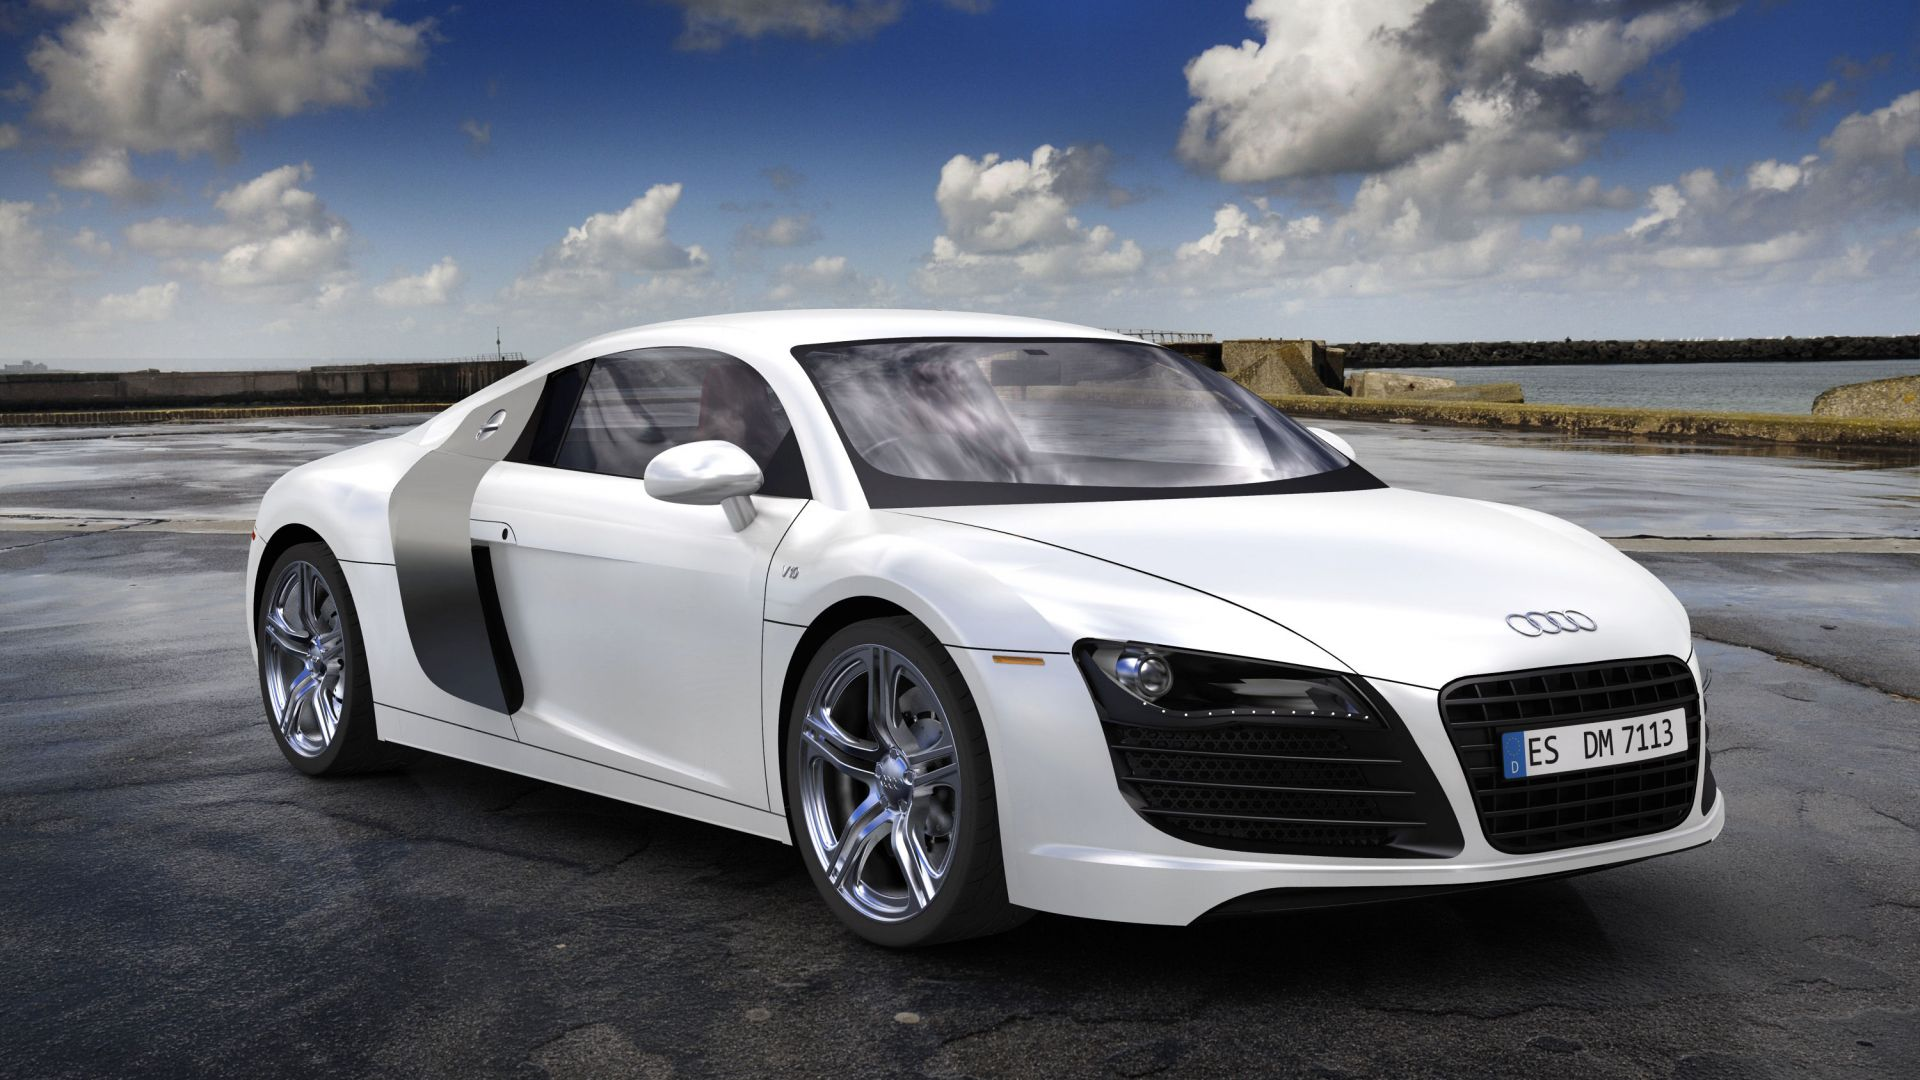 Cars Audi Roads R8 White V10 Wallpaper Allwallpaper In: Wallpaper Audi R8, Sport Car, Coupe, Review, Buy, Rent